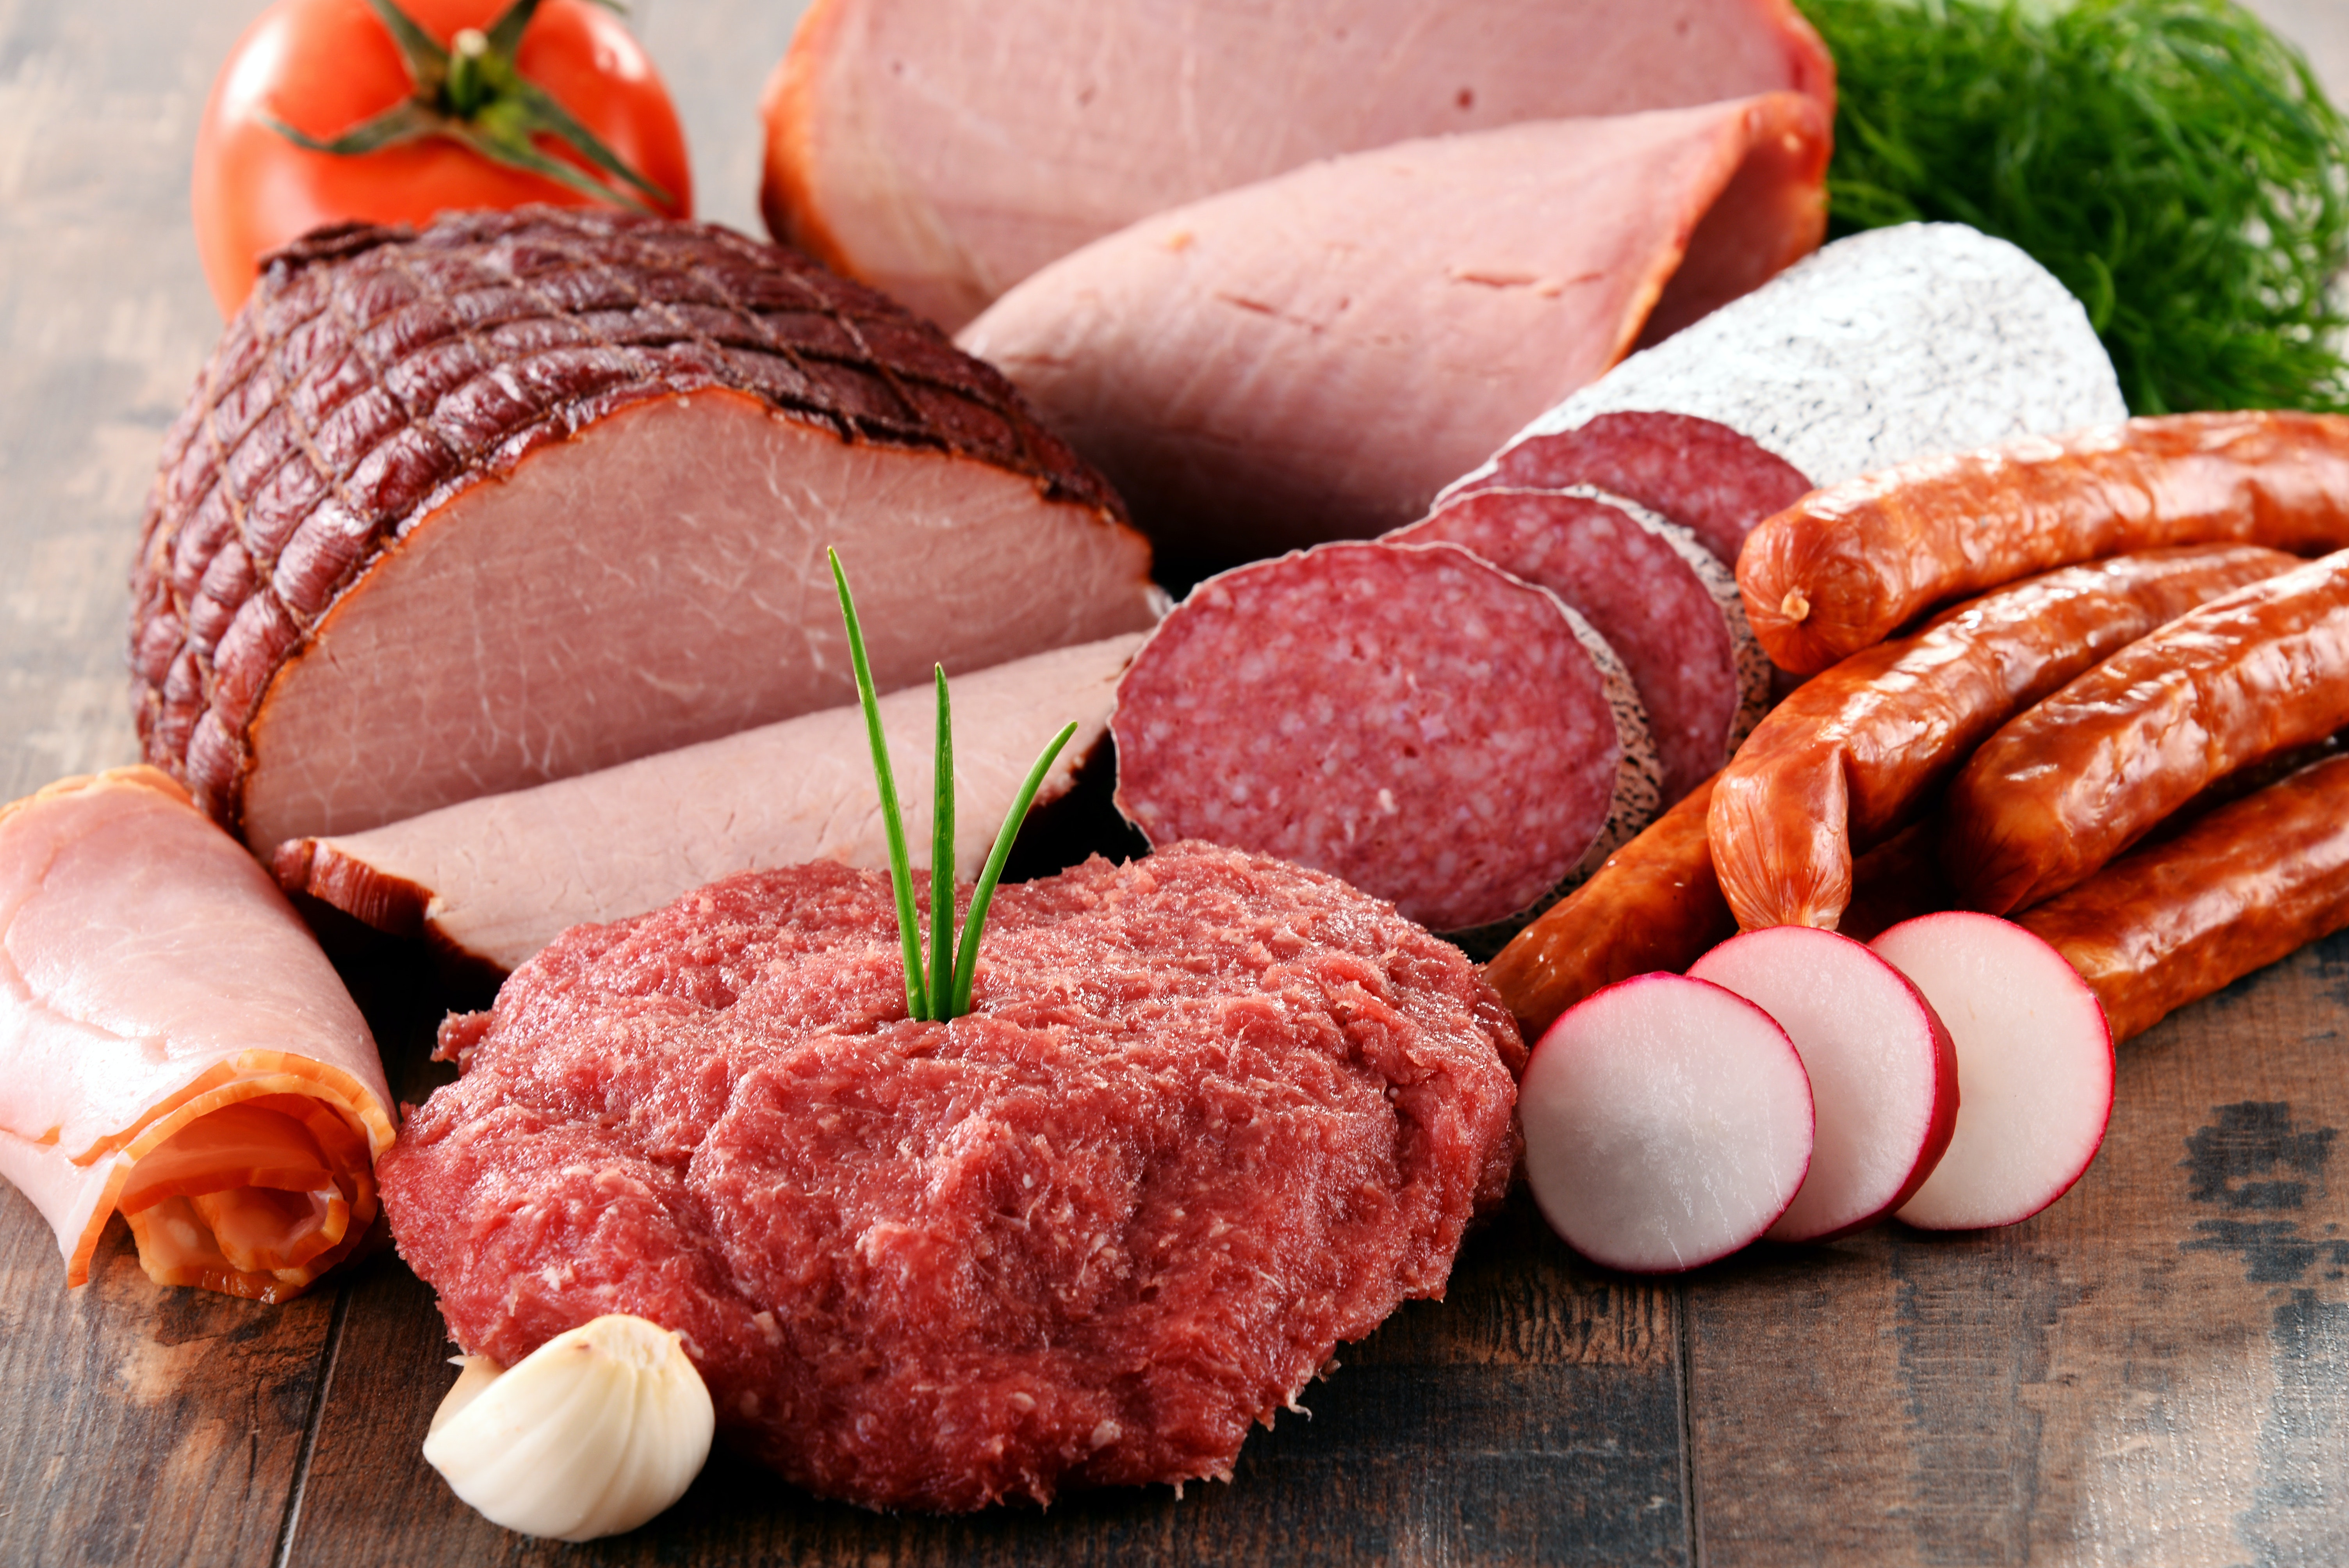 Not everything gives you cancer, but eating too much processed meat certainly can